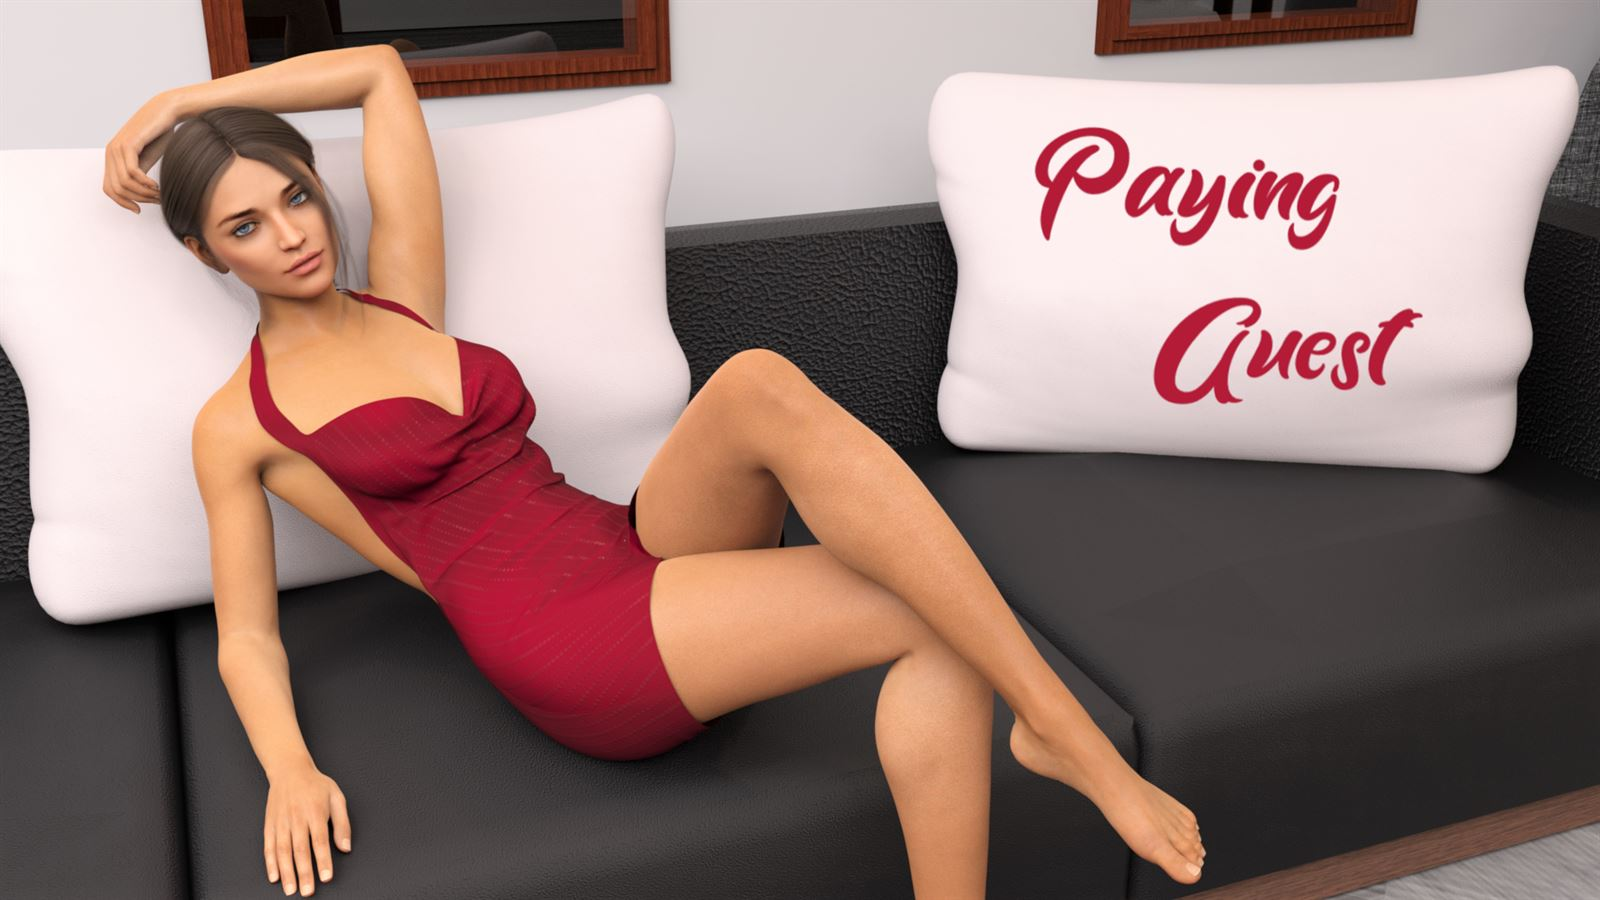 Paying Guest Adult Game Cover